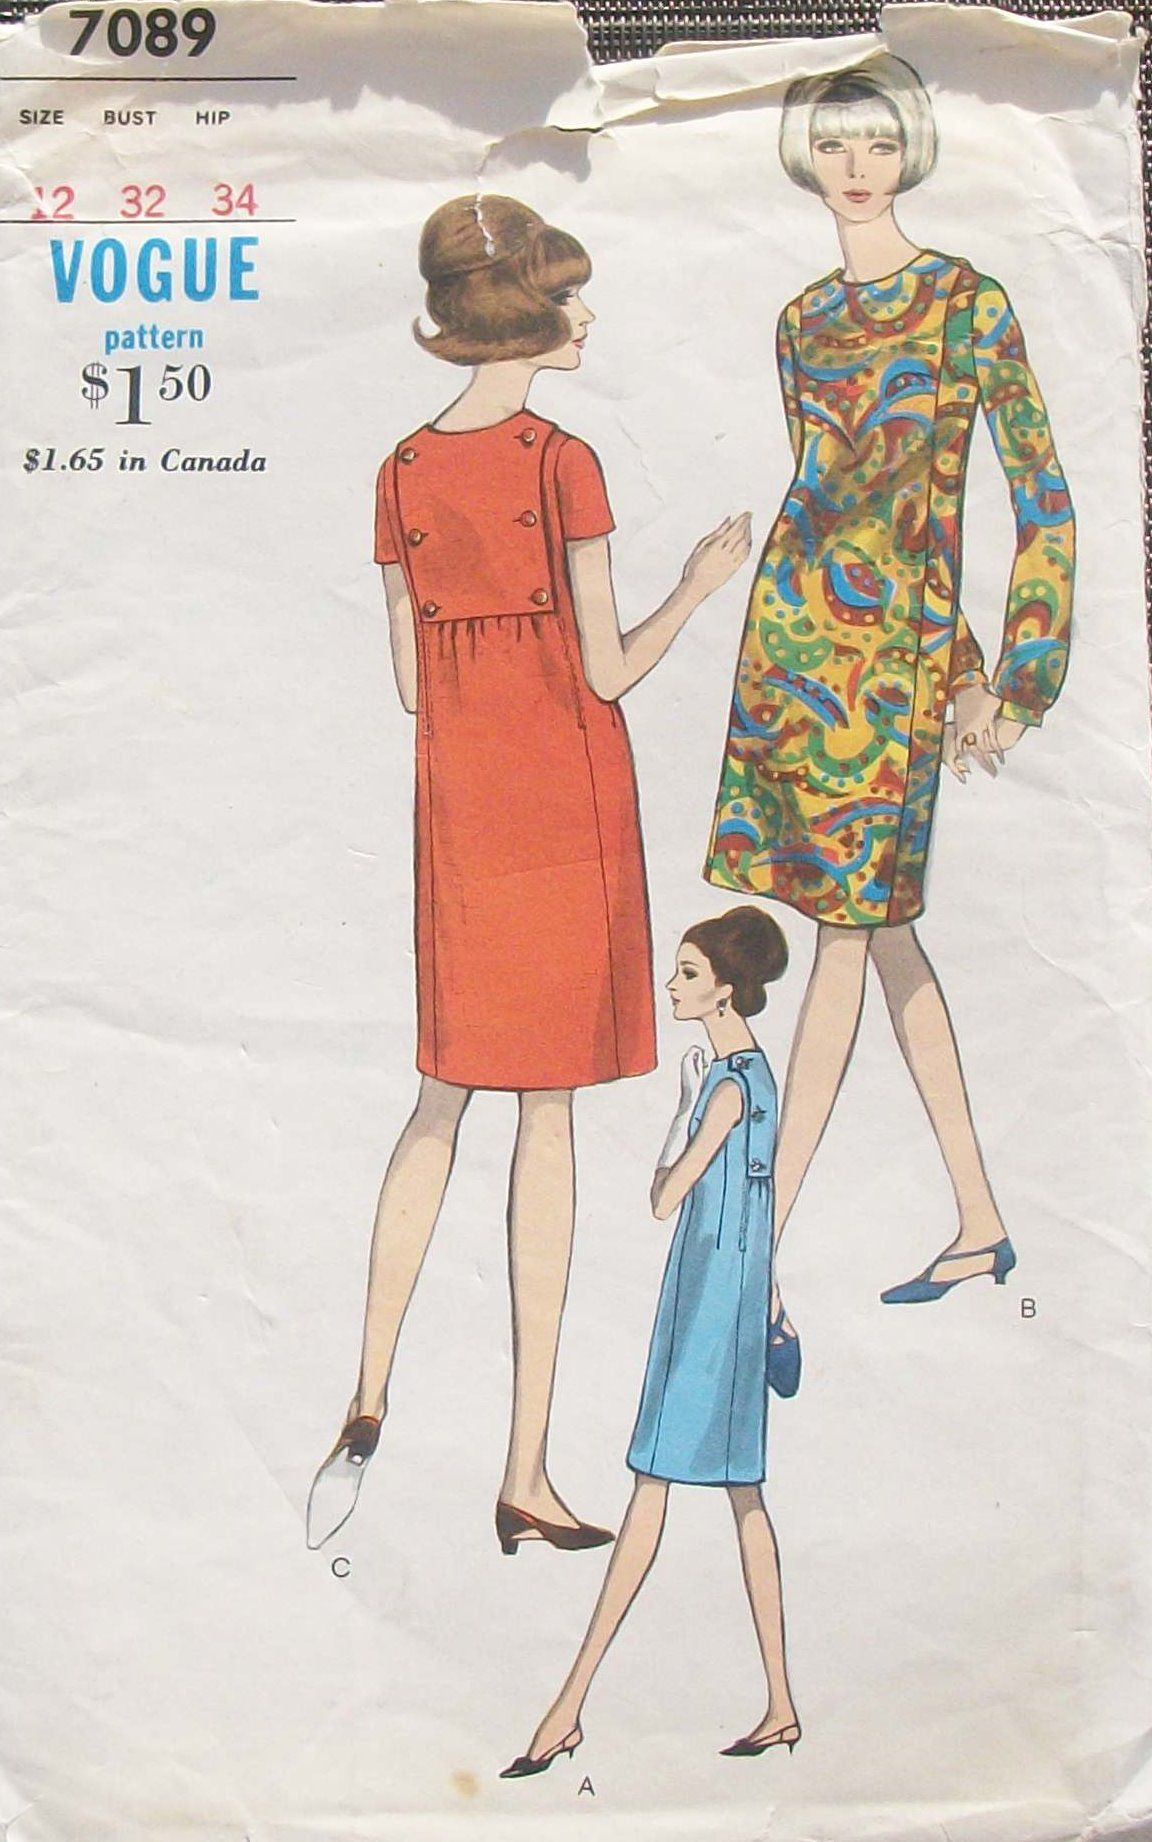 Vogue Dress Patterns | Pattern makes one piece dress. Slim dress has full length sleeves ...